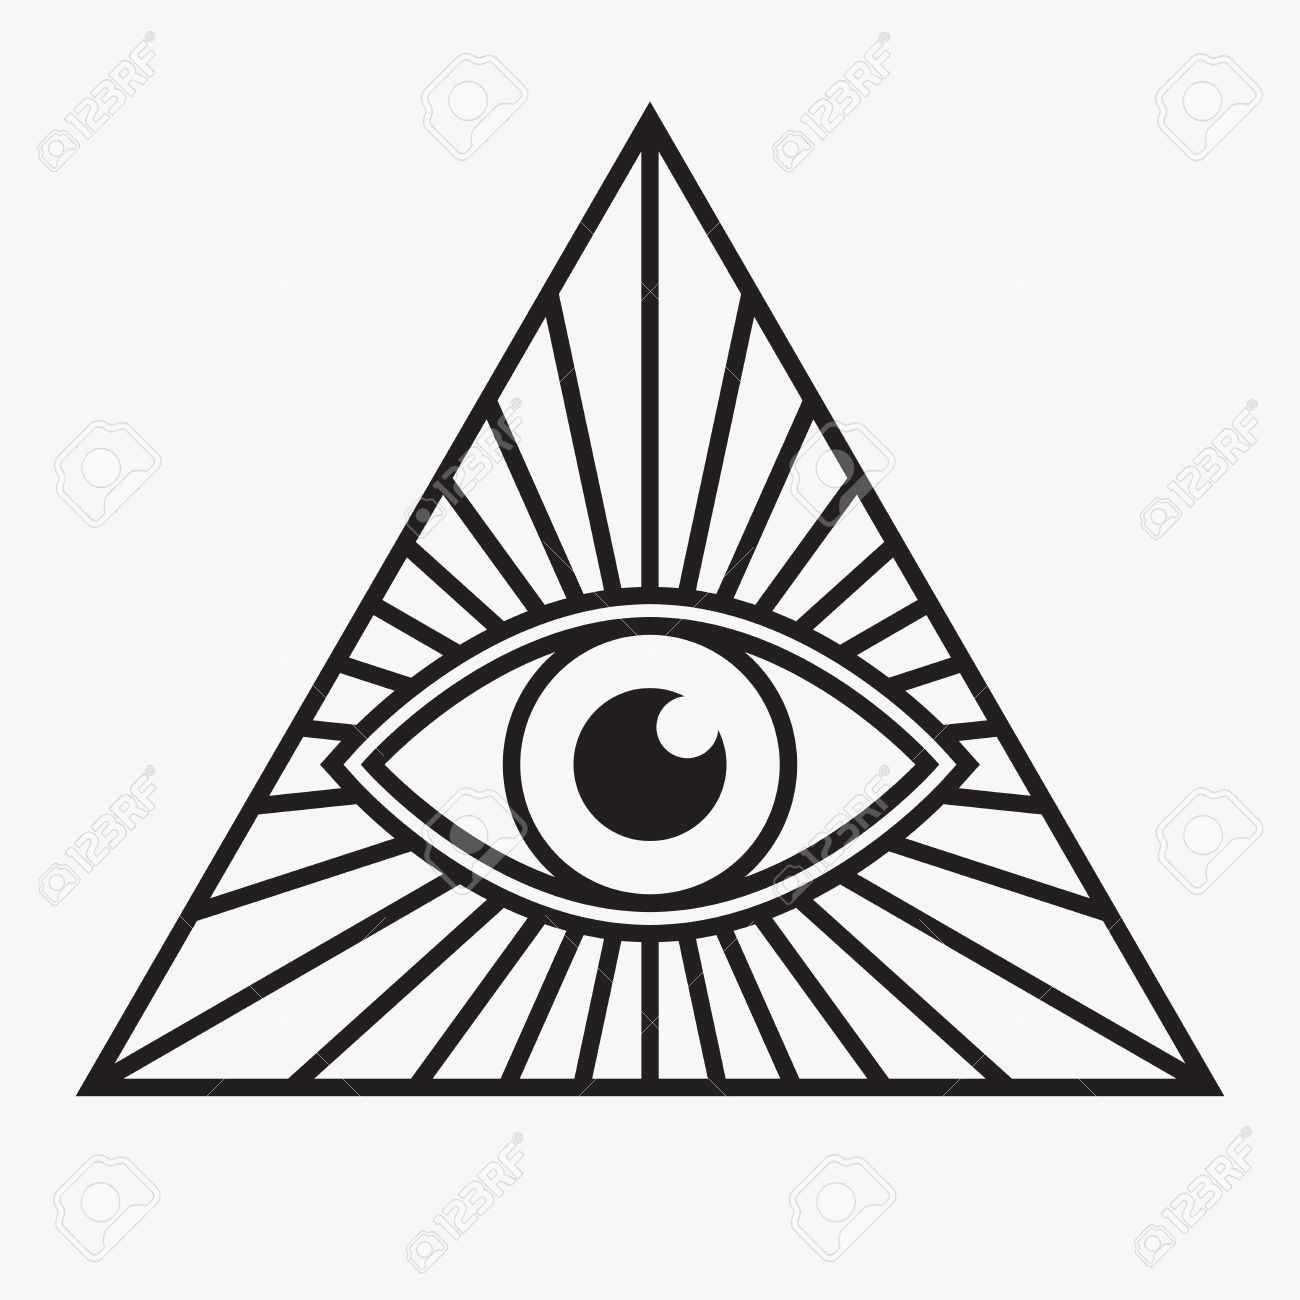 1300x1300 Stock Vector Patterns For Wcip Tattoos, Eye Symbol, All Seeing